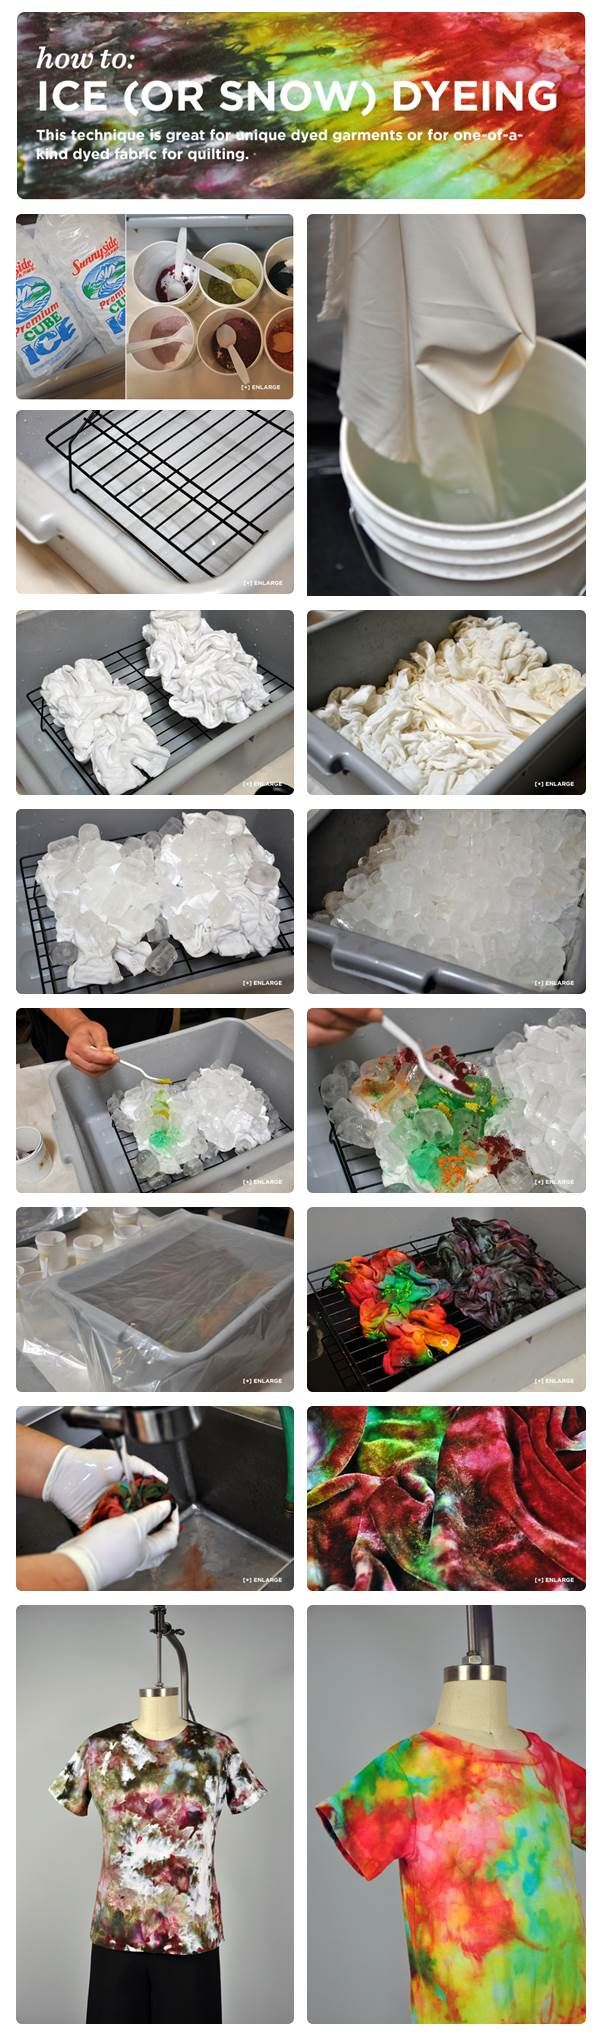 We love this photo strip from our Ice Dyeing Tutorial!